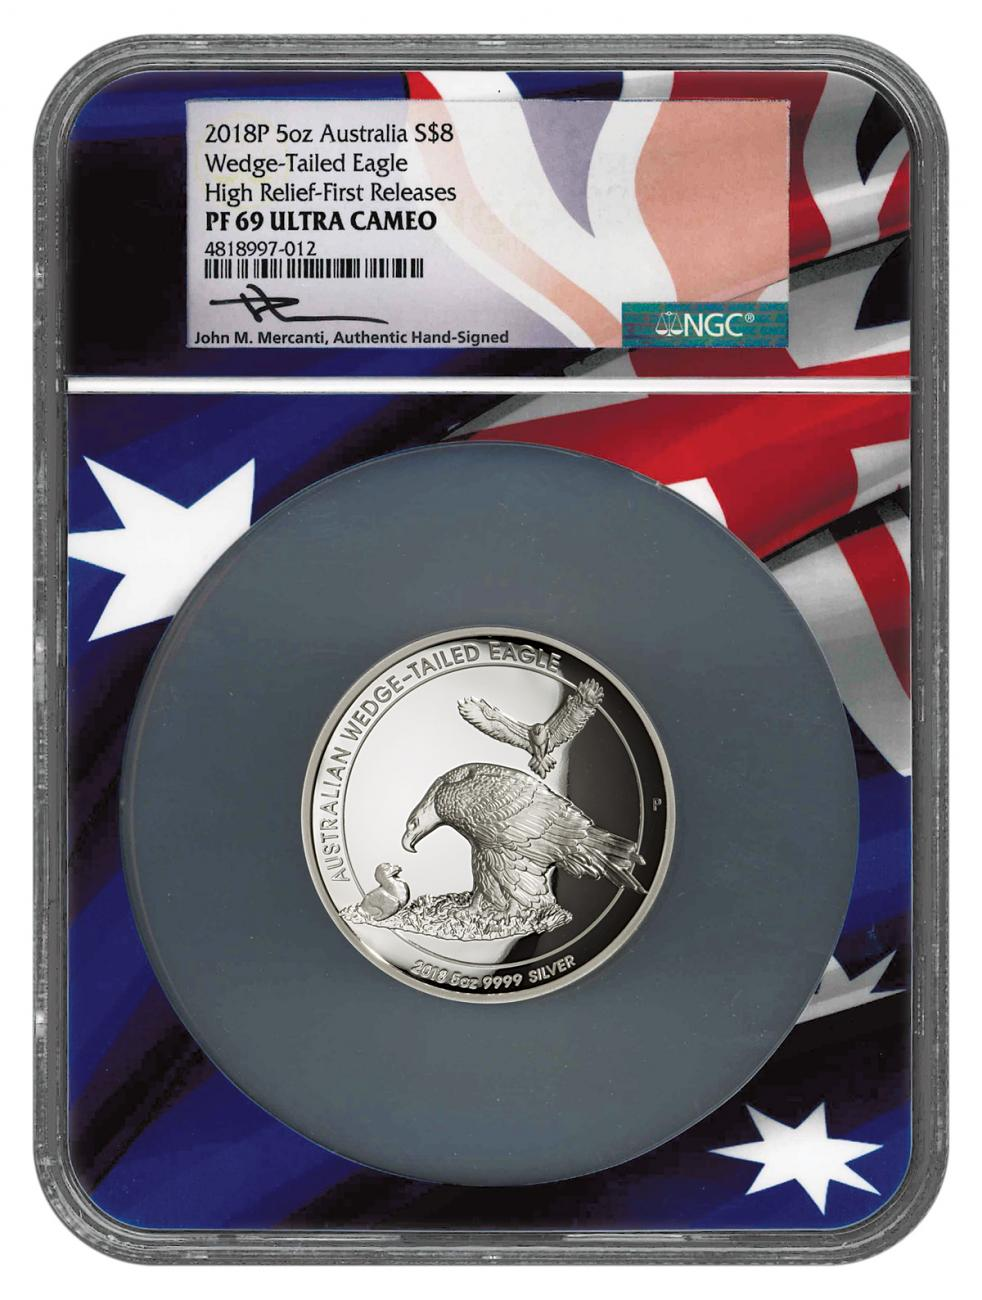 2018-P Australia 5 oz High Relief Silver Wedge-Tailed Eagle Proof $8 Coin NGC PF69 UC FR Flag Core Mercanti Signed Flag Label